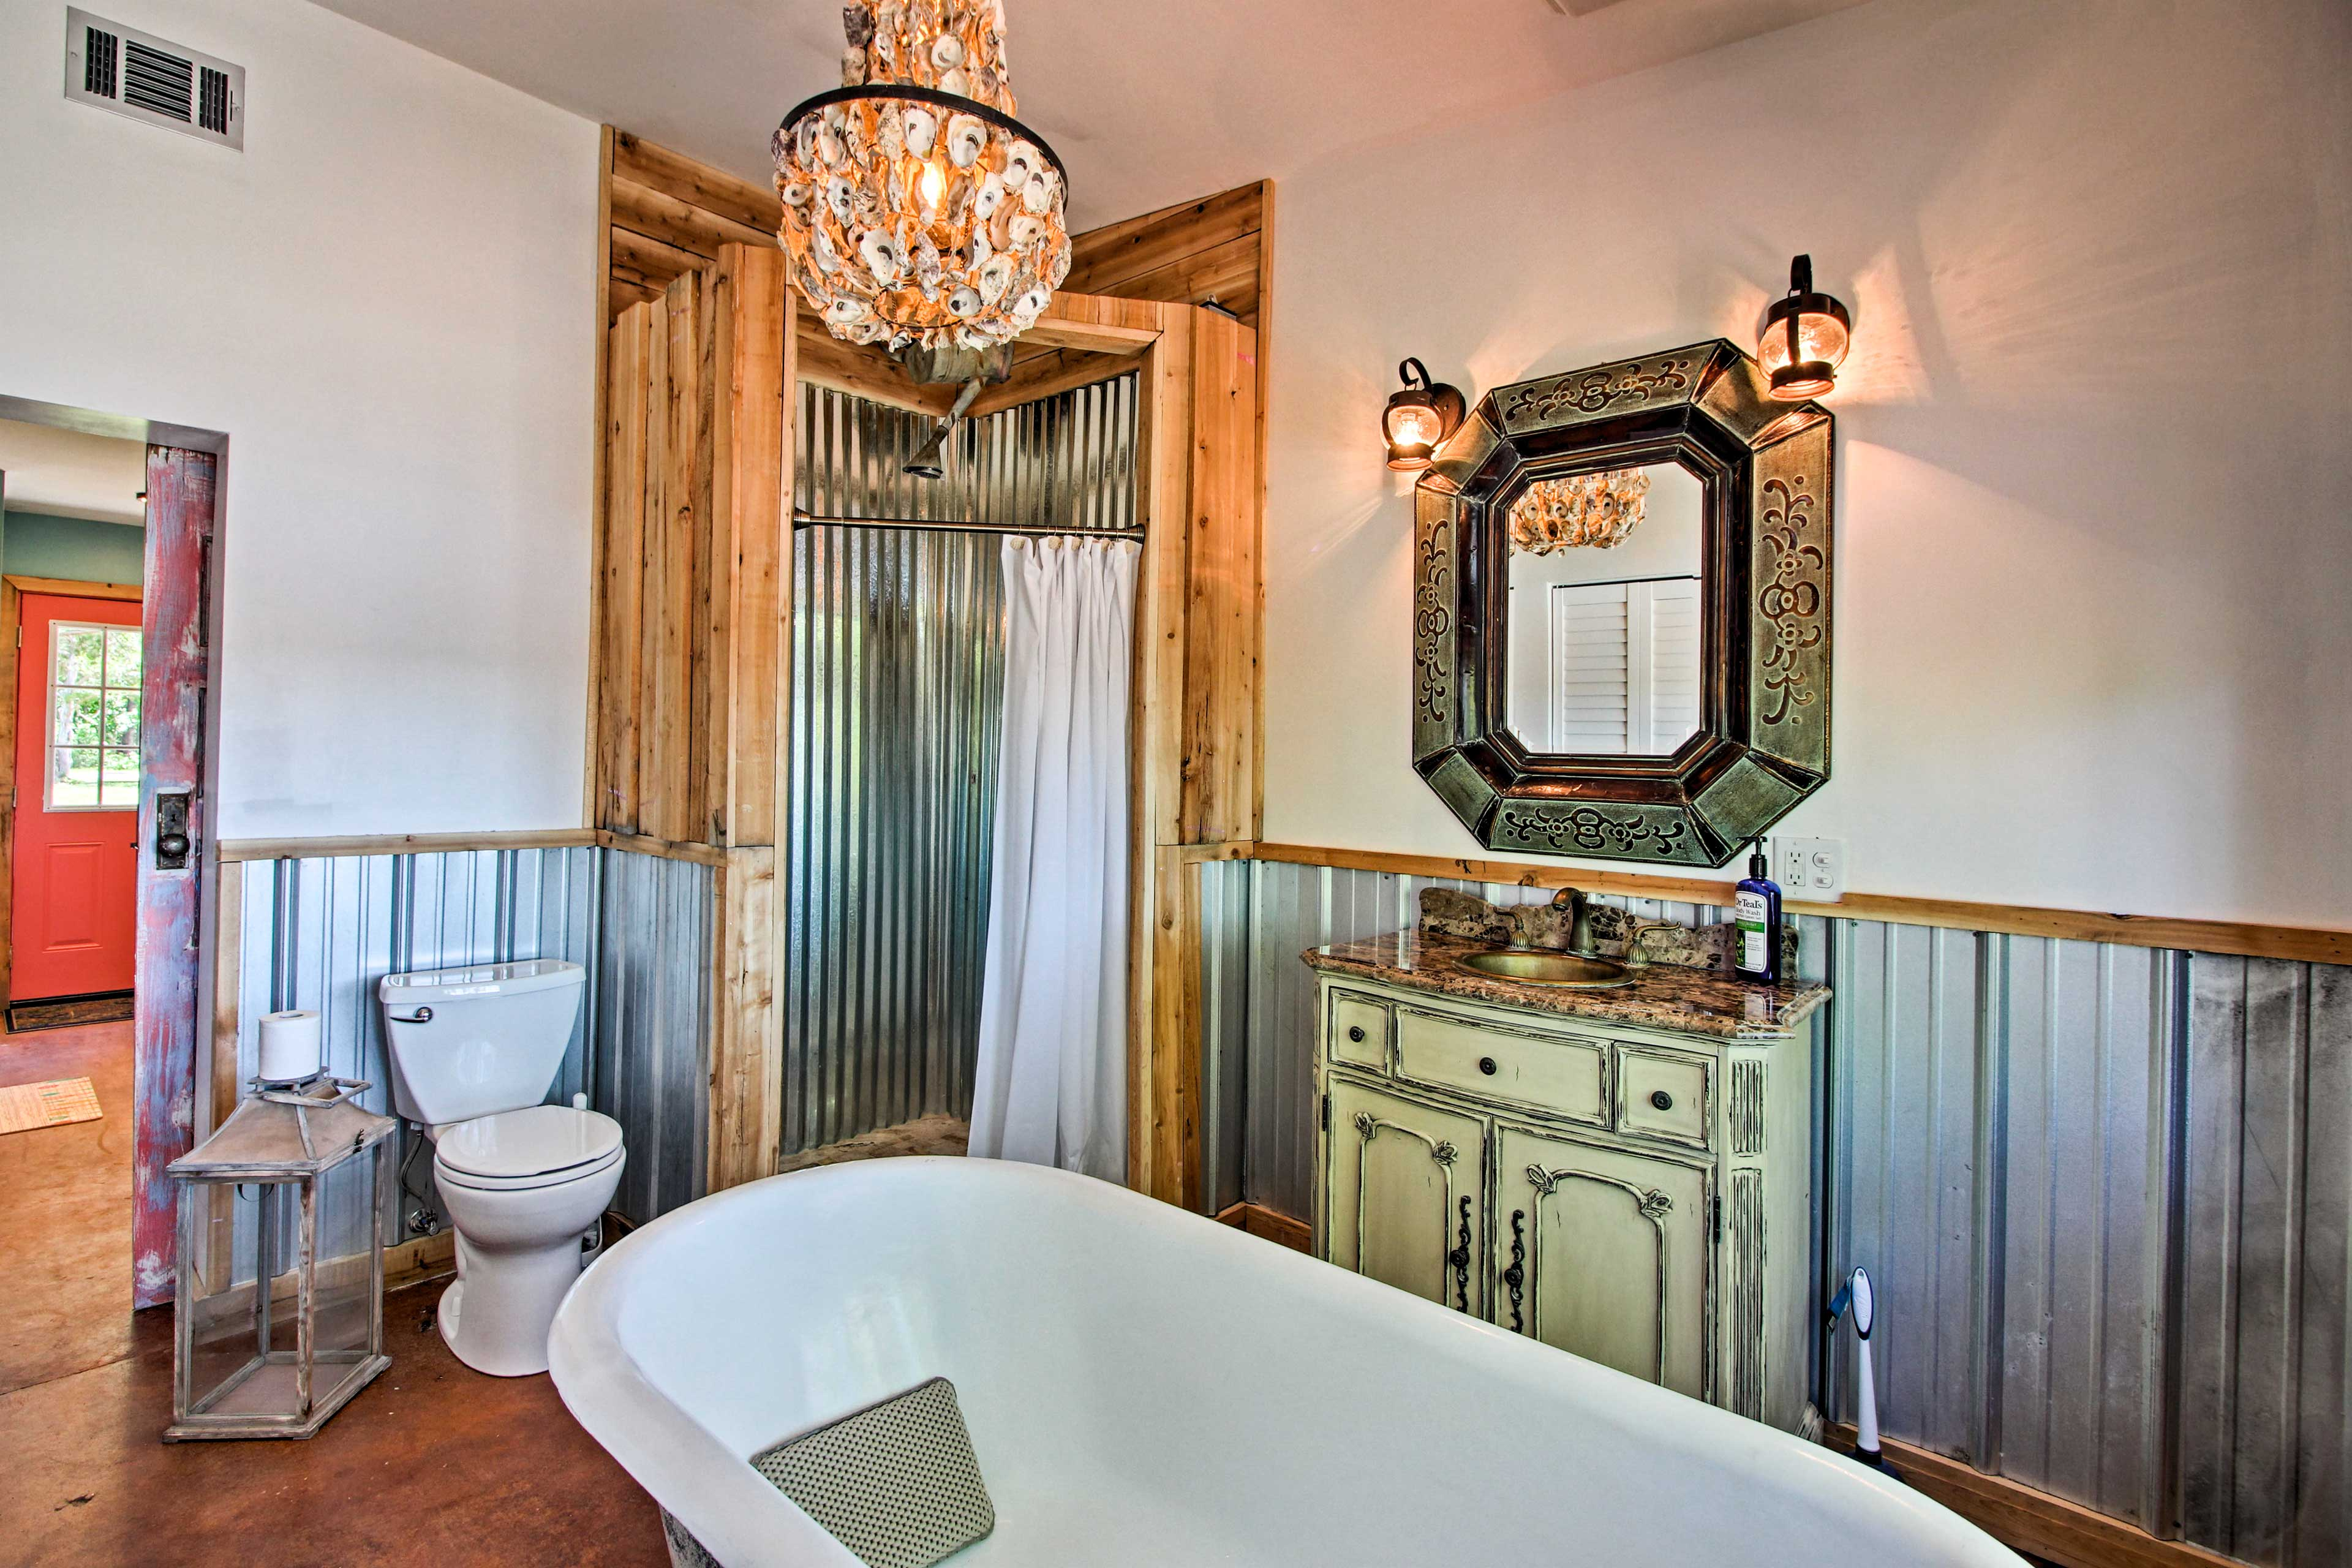 The rustic, pink barn door slides aside to expose this spa-like bathroom.